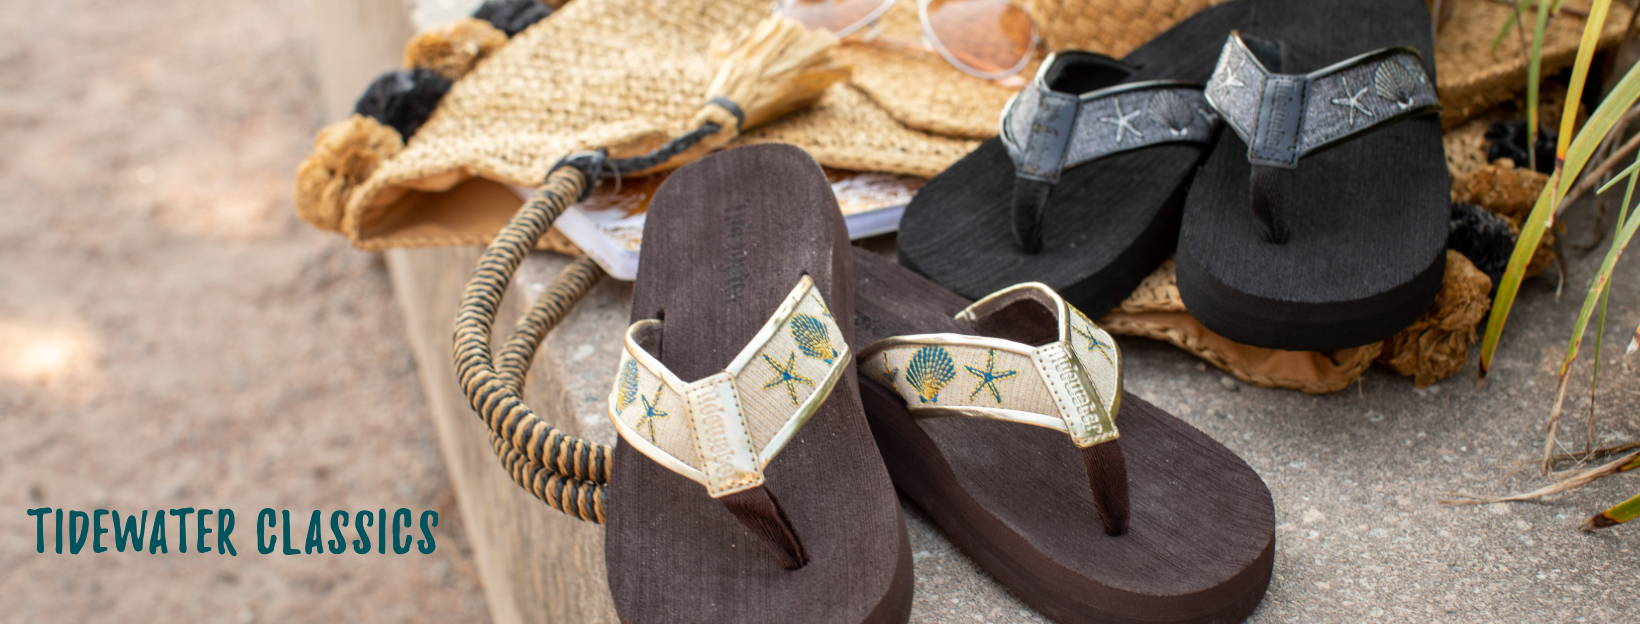 6c63695ea Tidewater Sandals - Comfort and Style all day